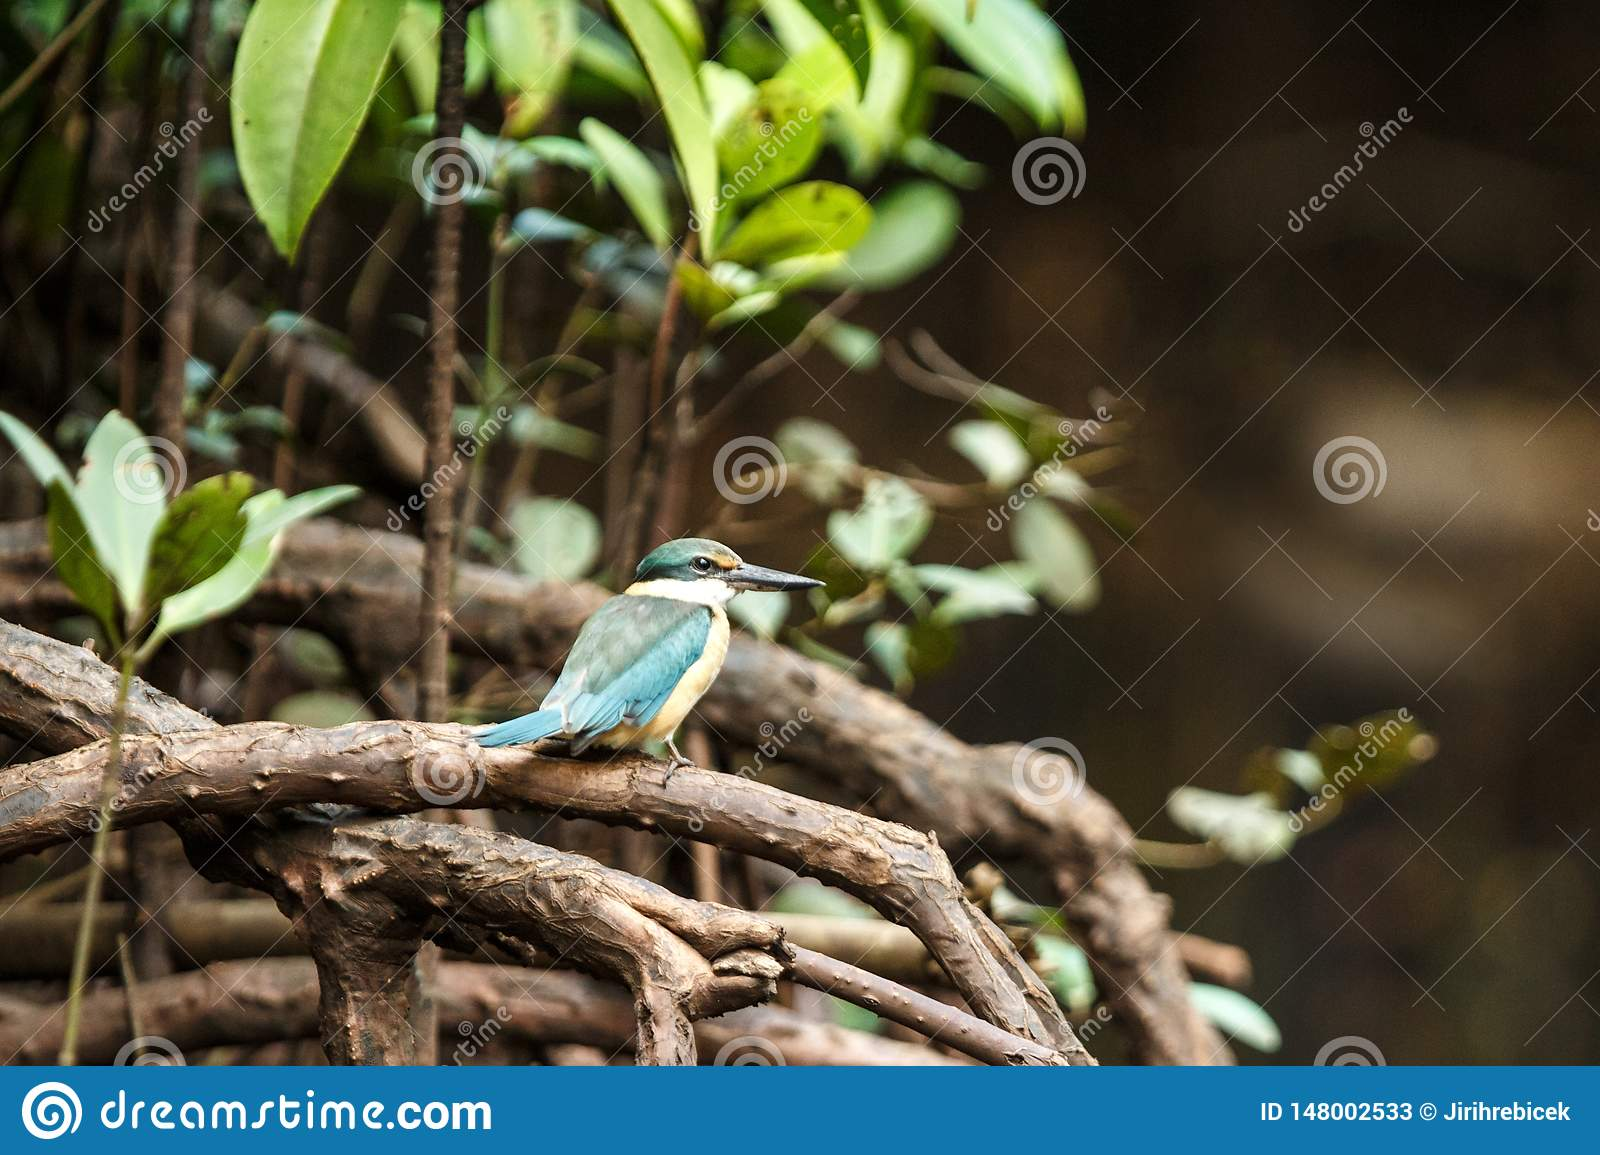 The sacred kingfisher Todiramphus sanctus perches on a branch in mangrove bush, family Alcedinidae, endemic species to Indonesia